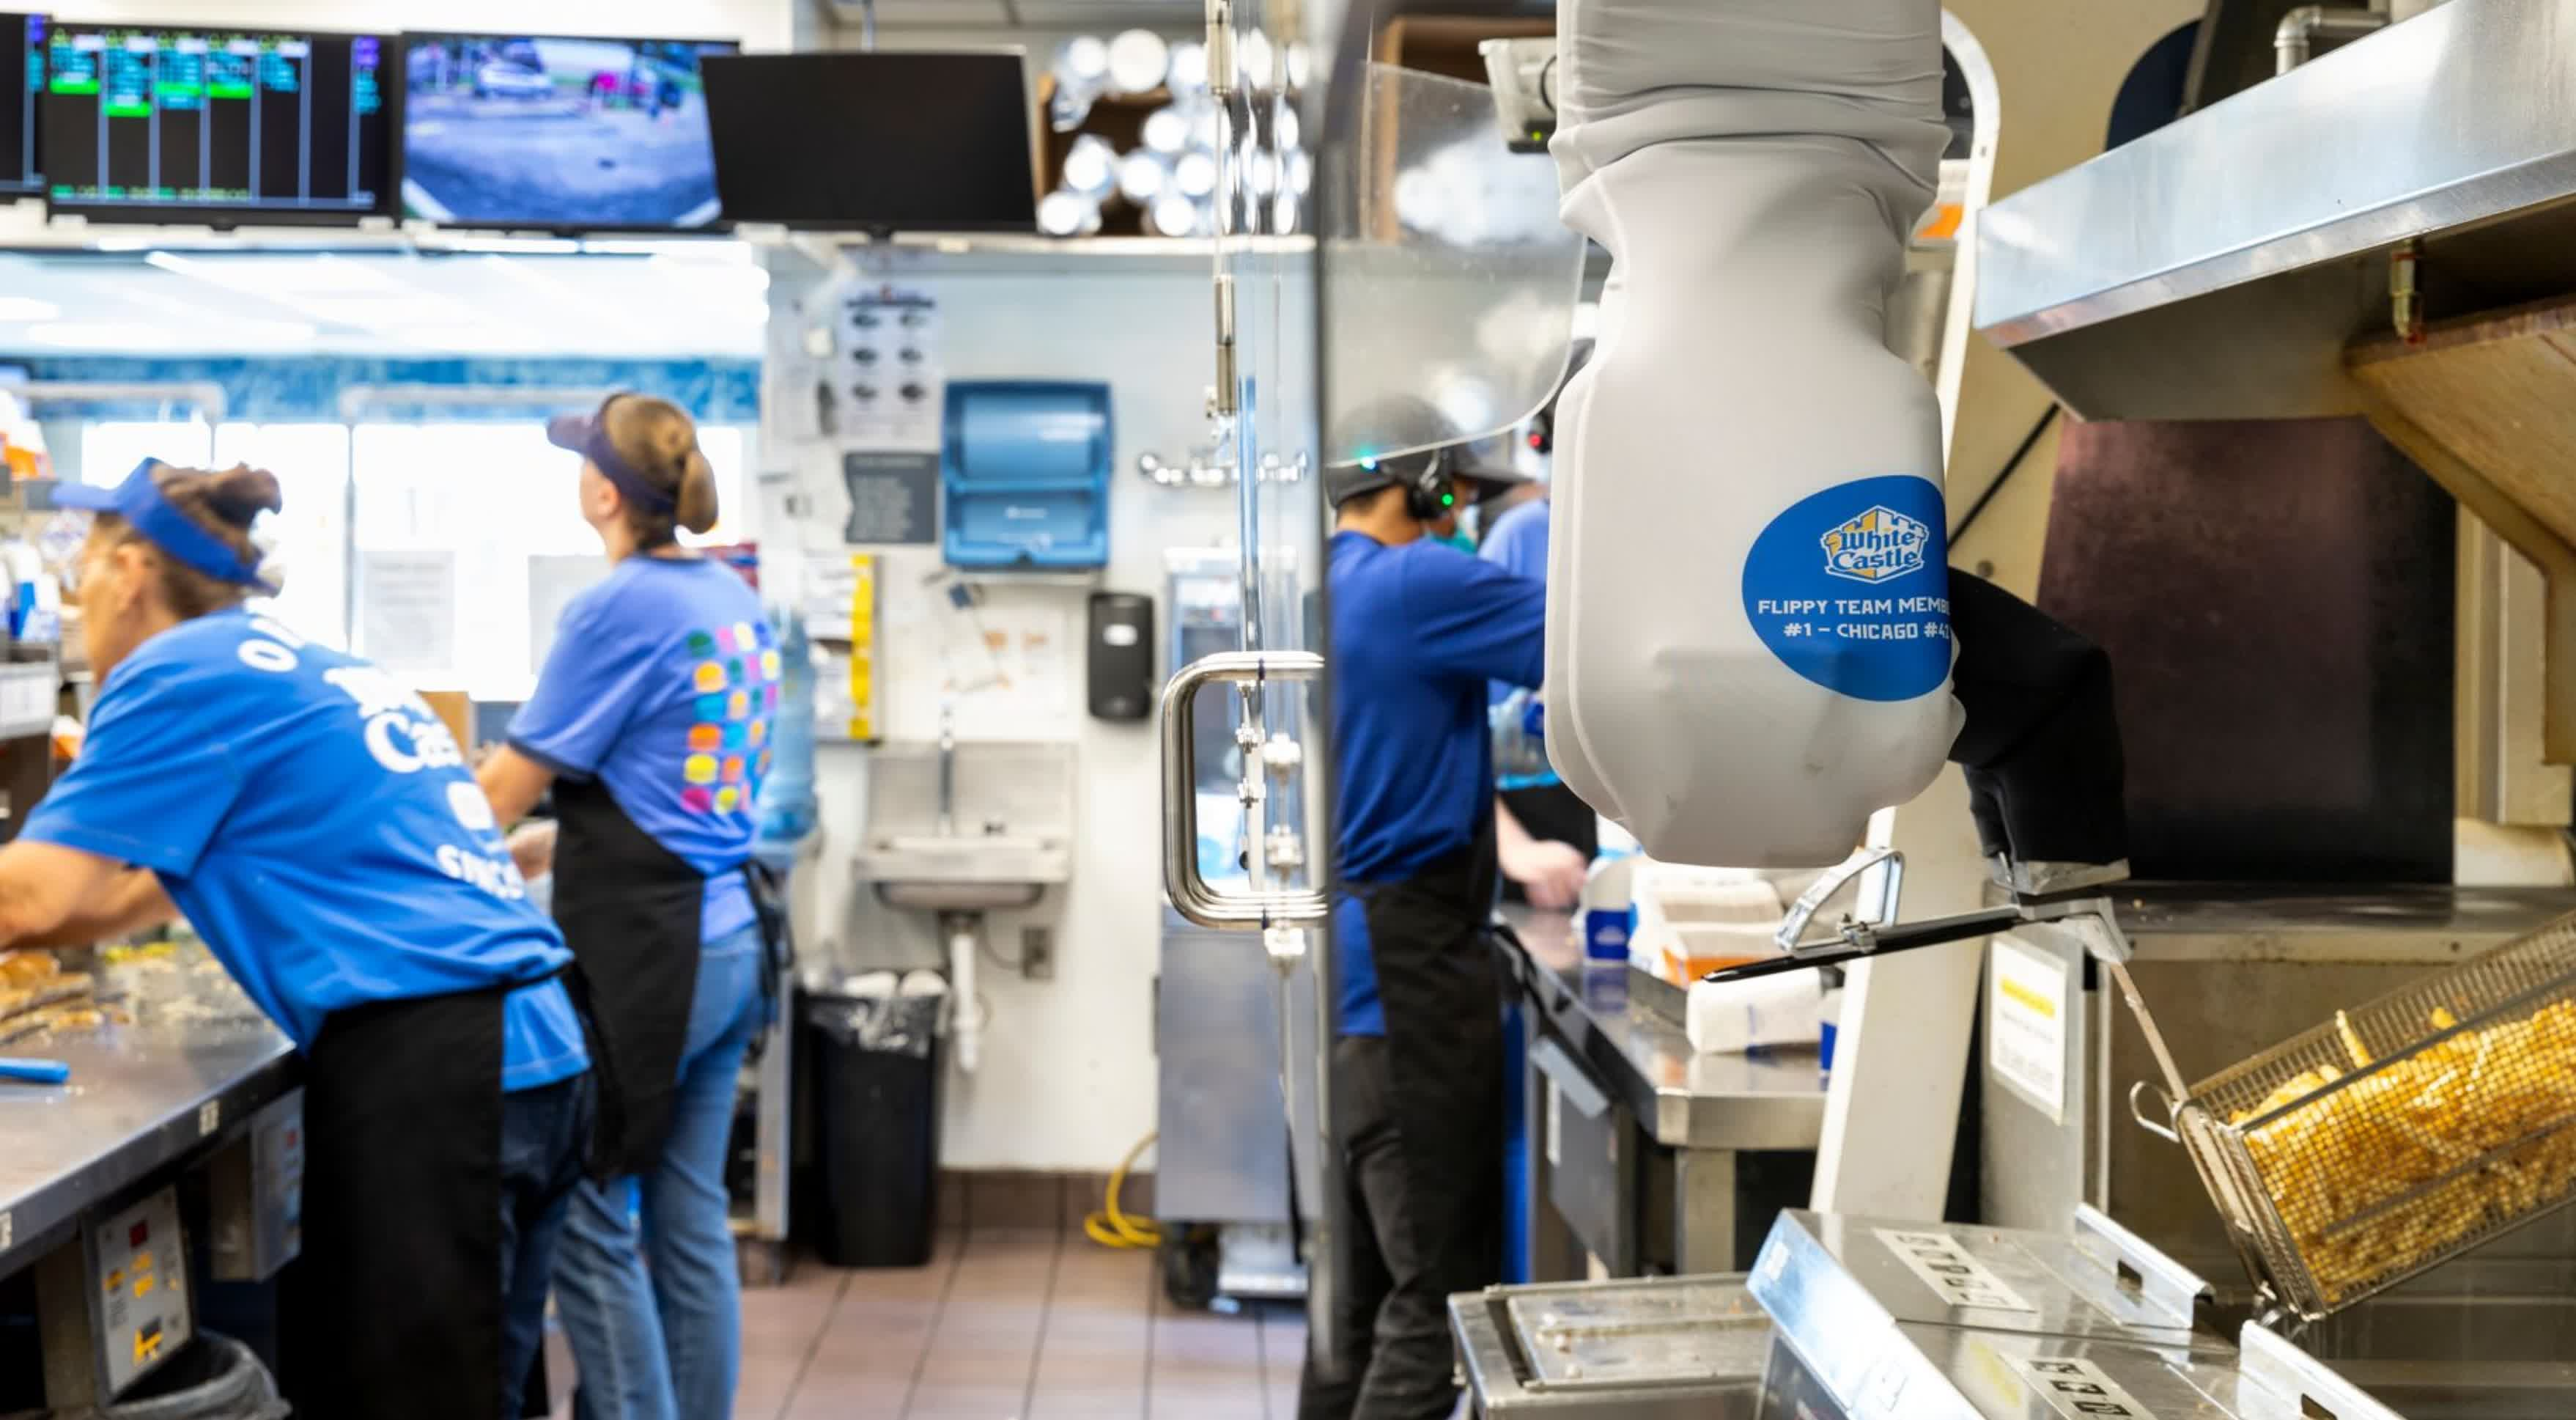 Restaurant operators are turning to robots as labor shortage drags on